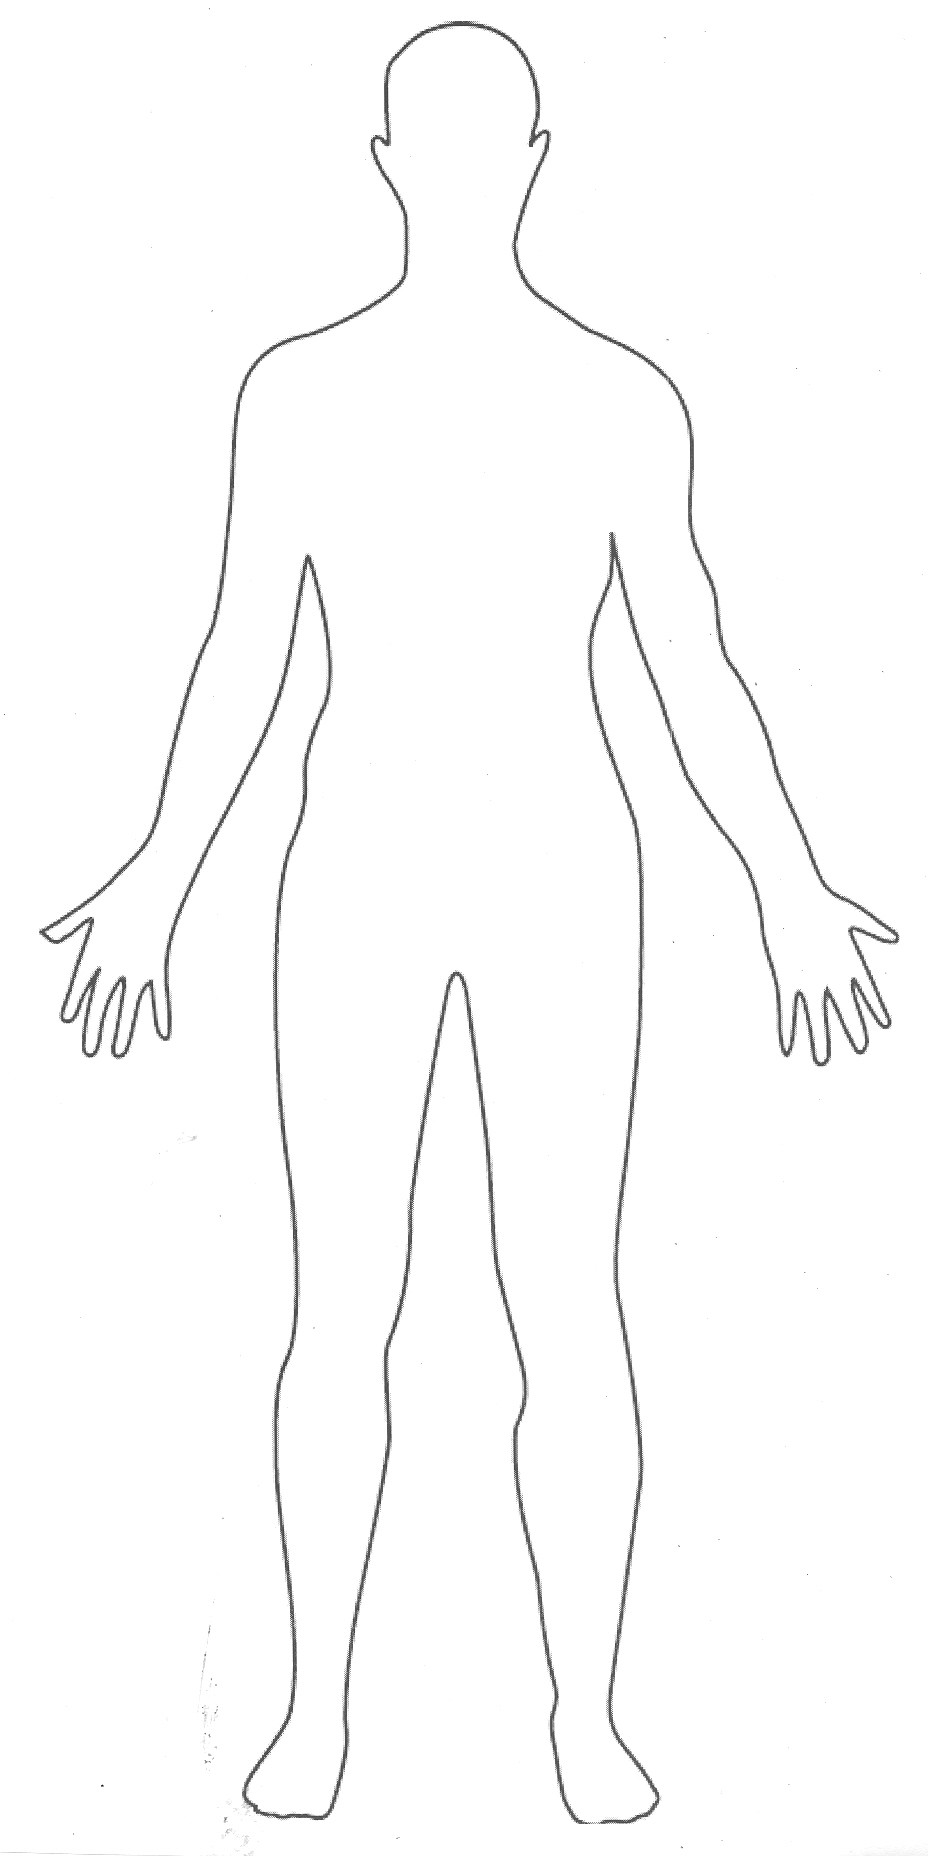 Medical Body Drawing At Getdrawings Free For Personal Use